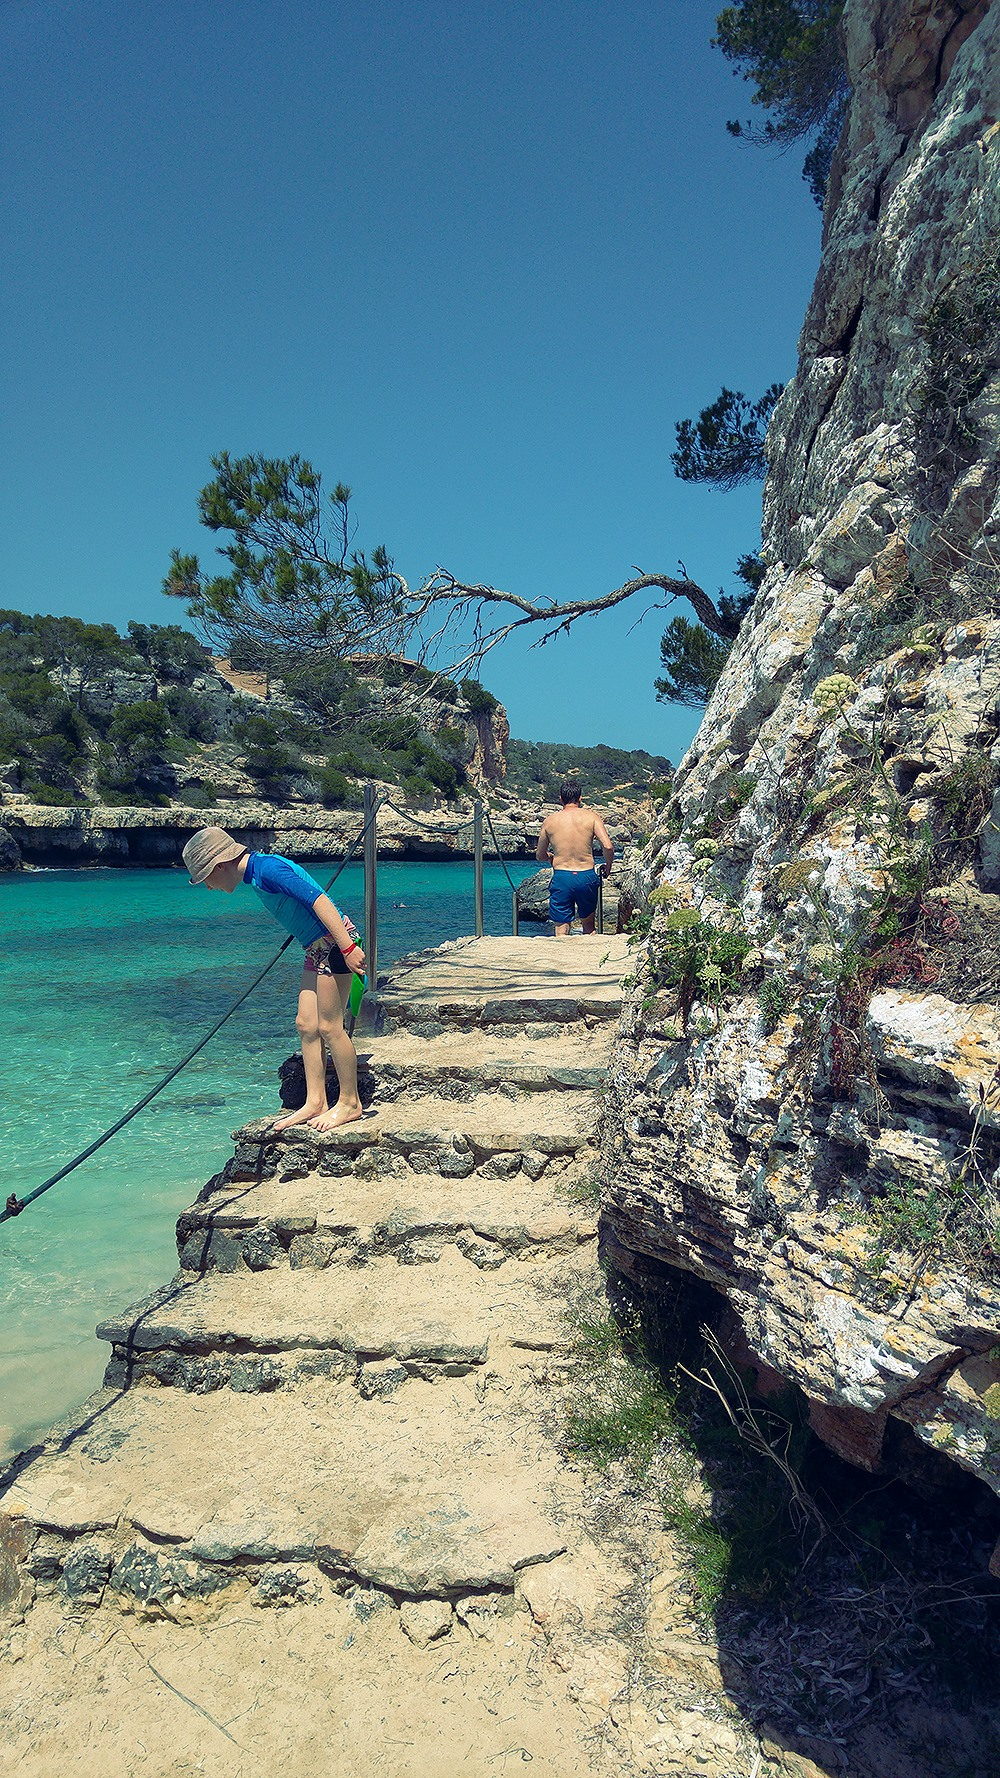 Mallorca-Cala-Llombards-Meer-Treppe-Junge